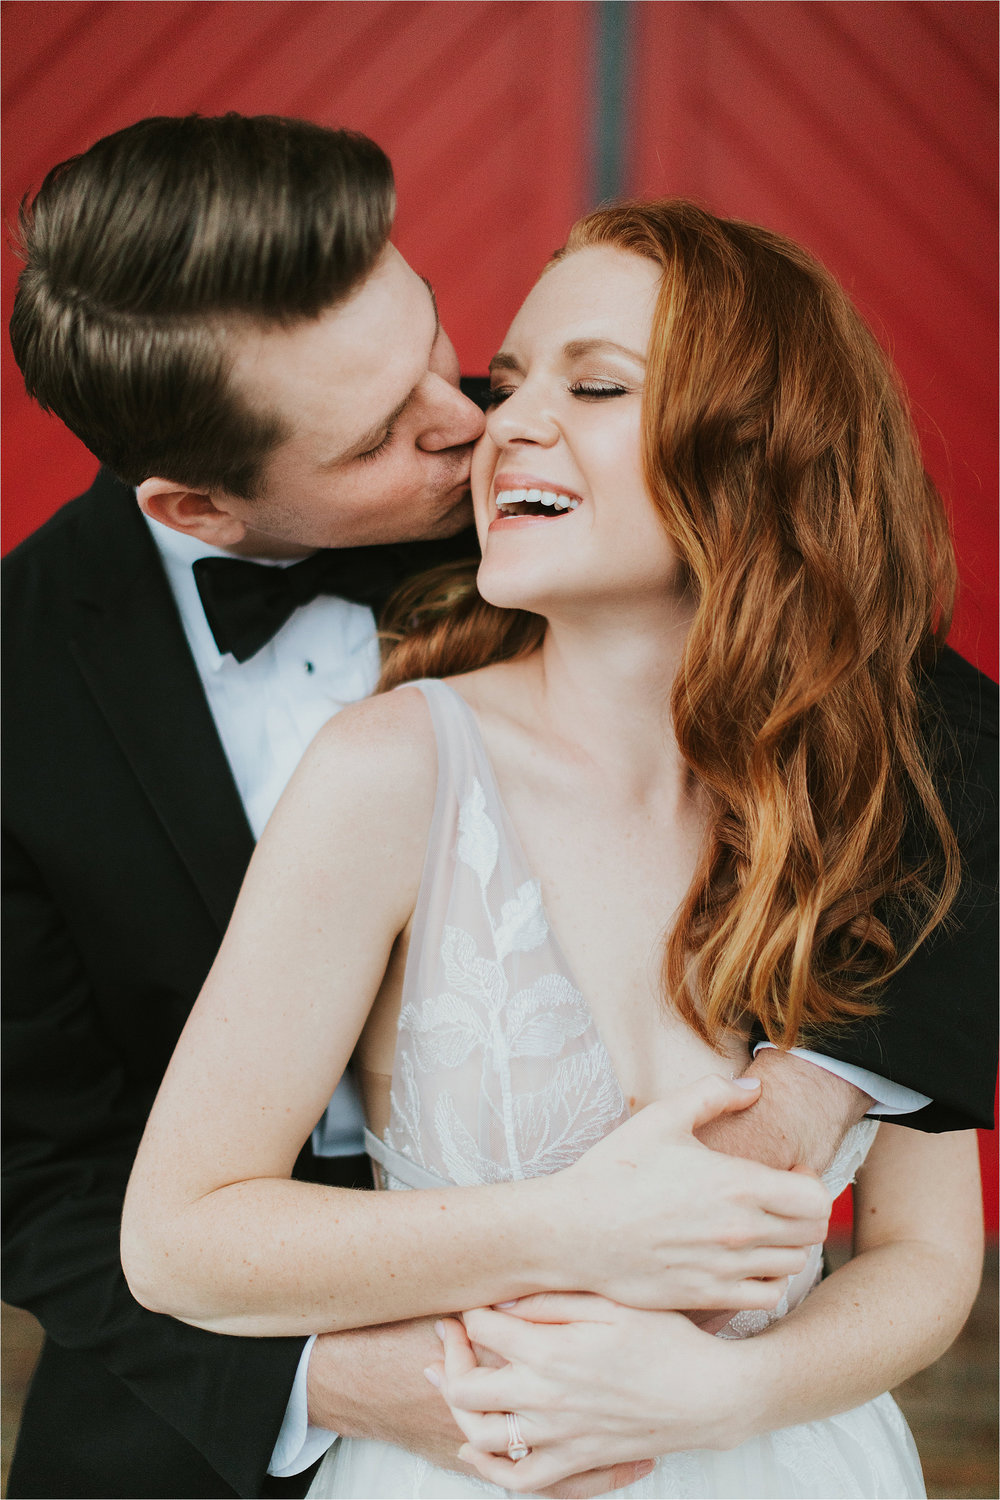 NashvilleWedding_NewYearsEveWedding_NYE_NashvilleWeddingPhotographer_LovelessWedding_Tennessee_MollyPeachPhotography-42.jpg